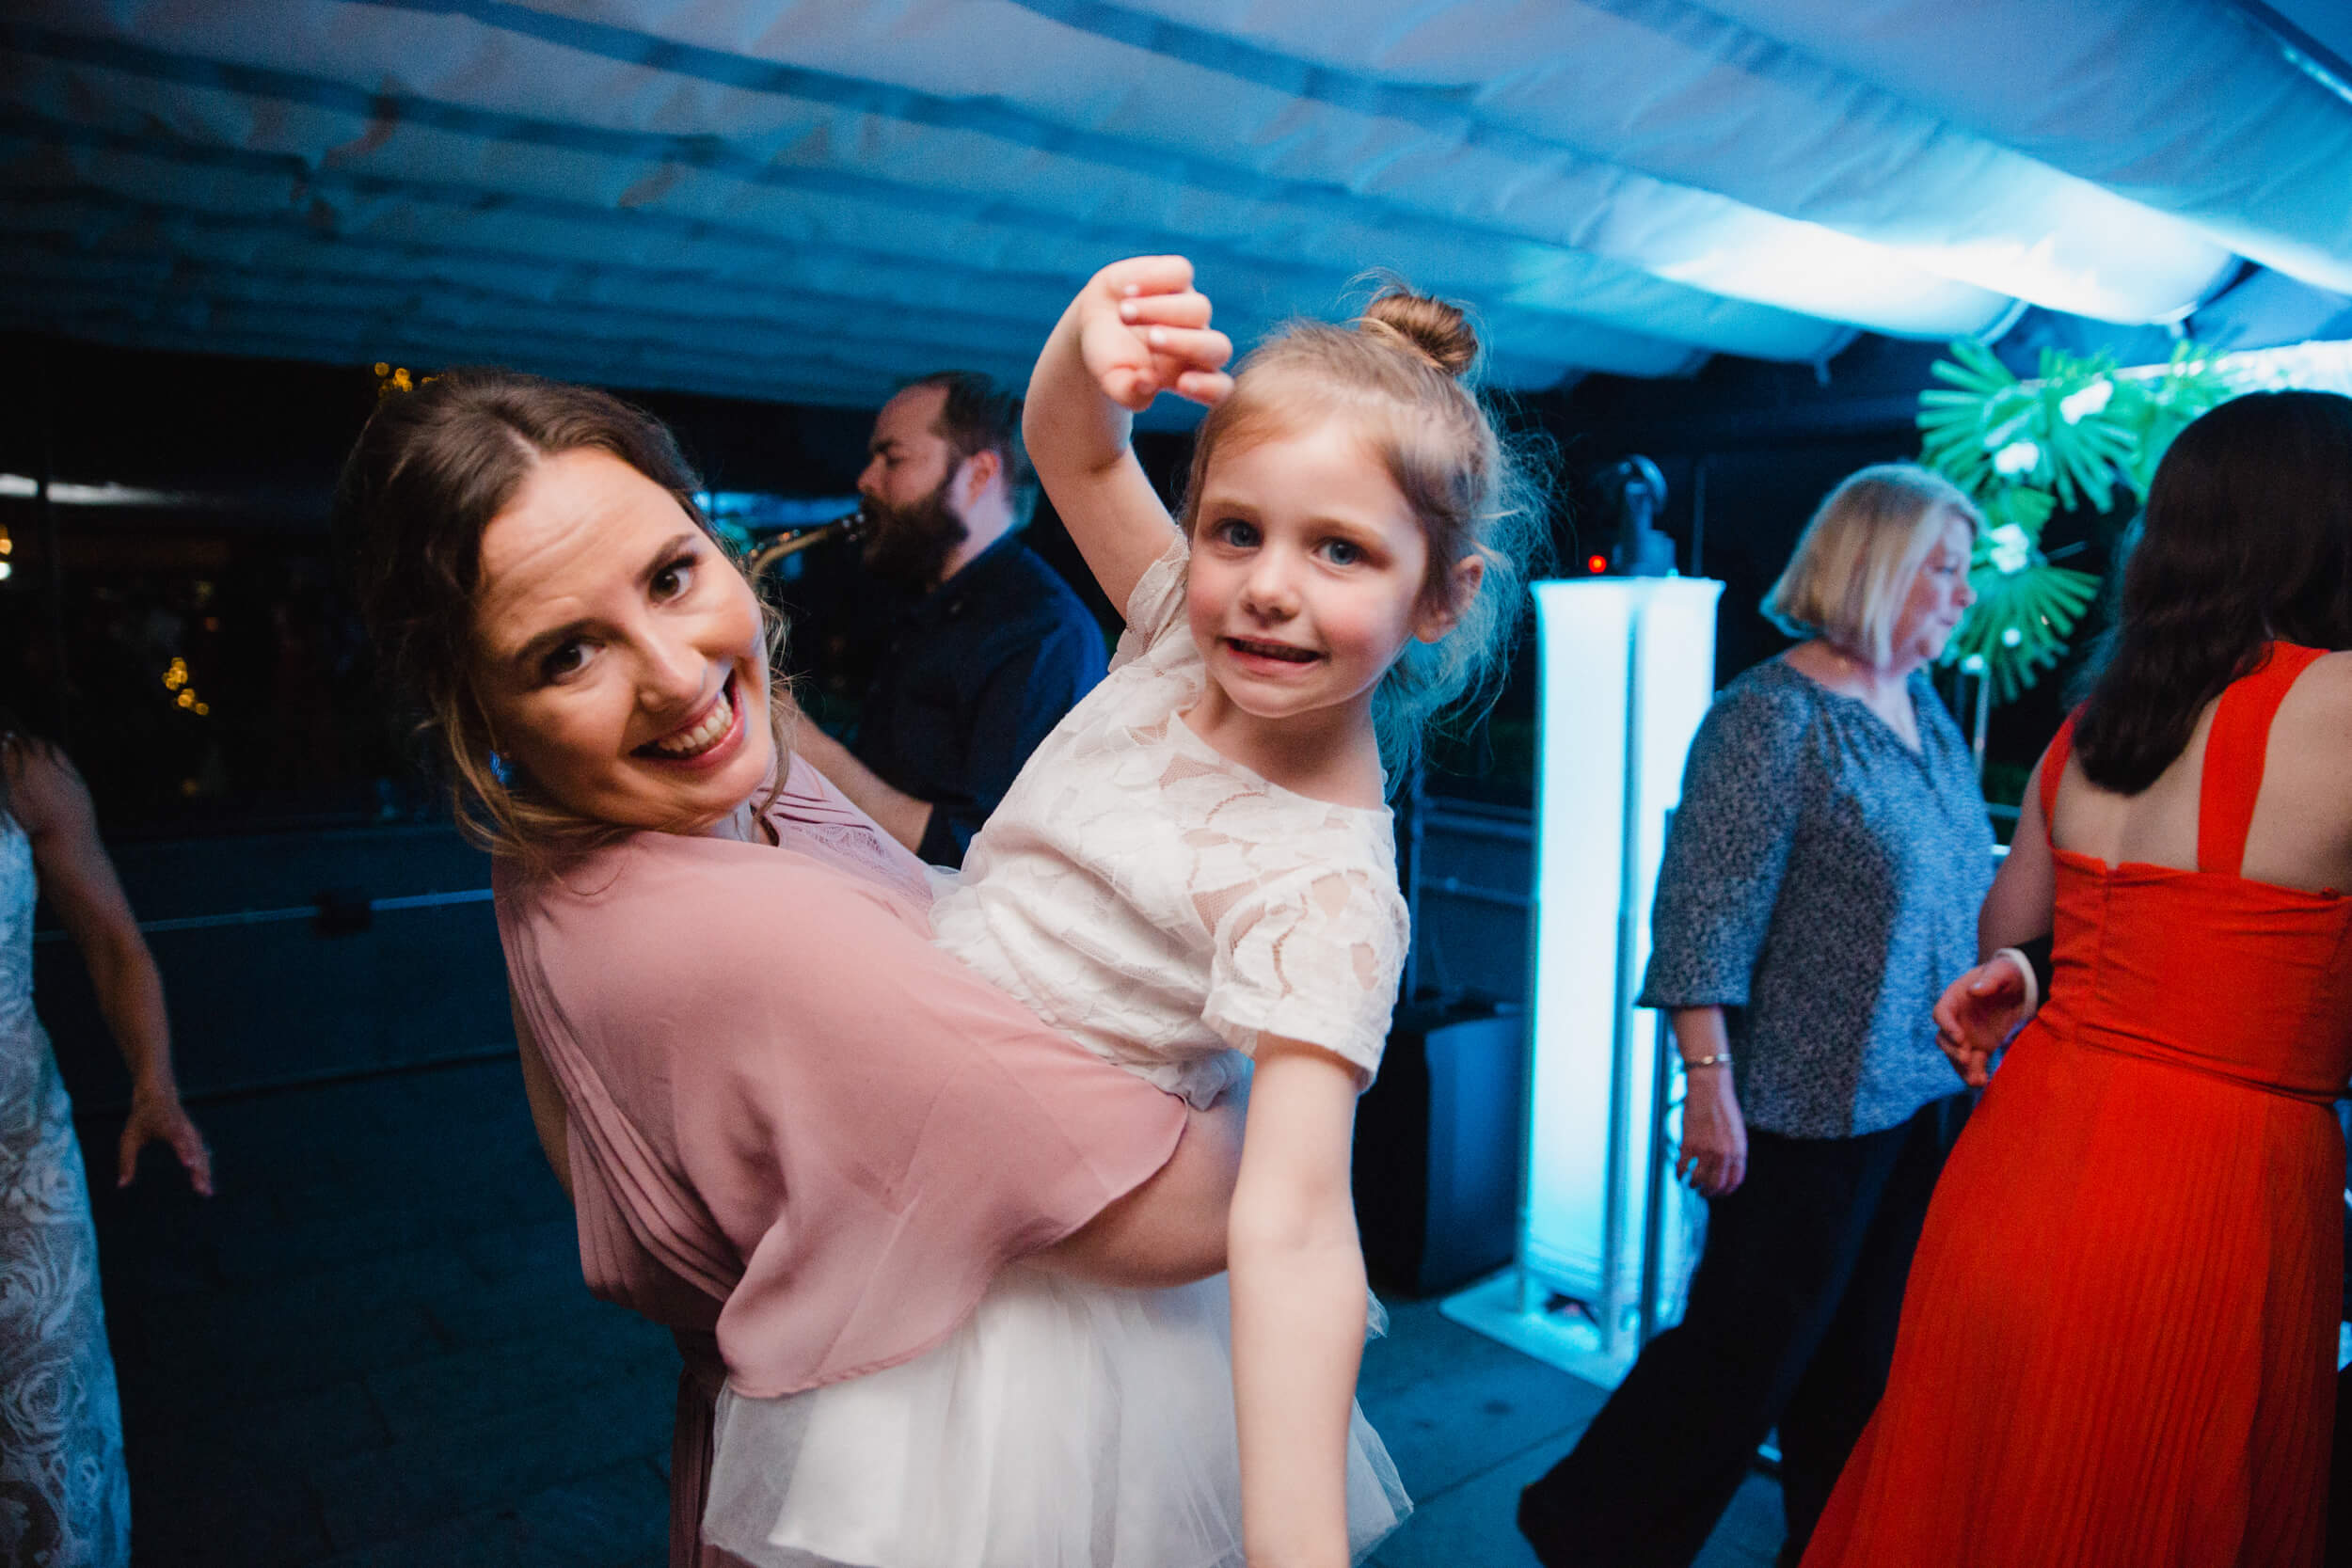 bridesmaid holding flower girl on dance floor of wedding